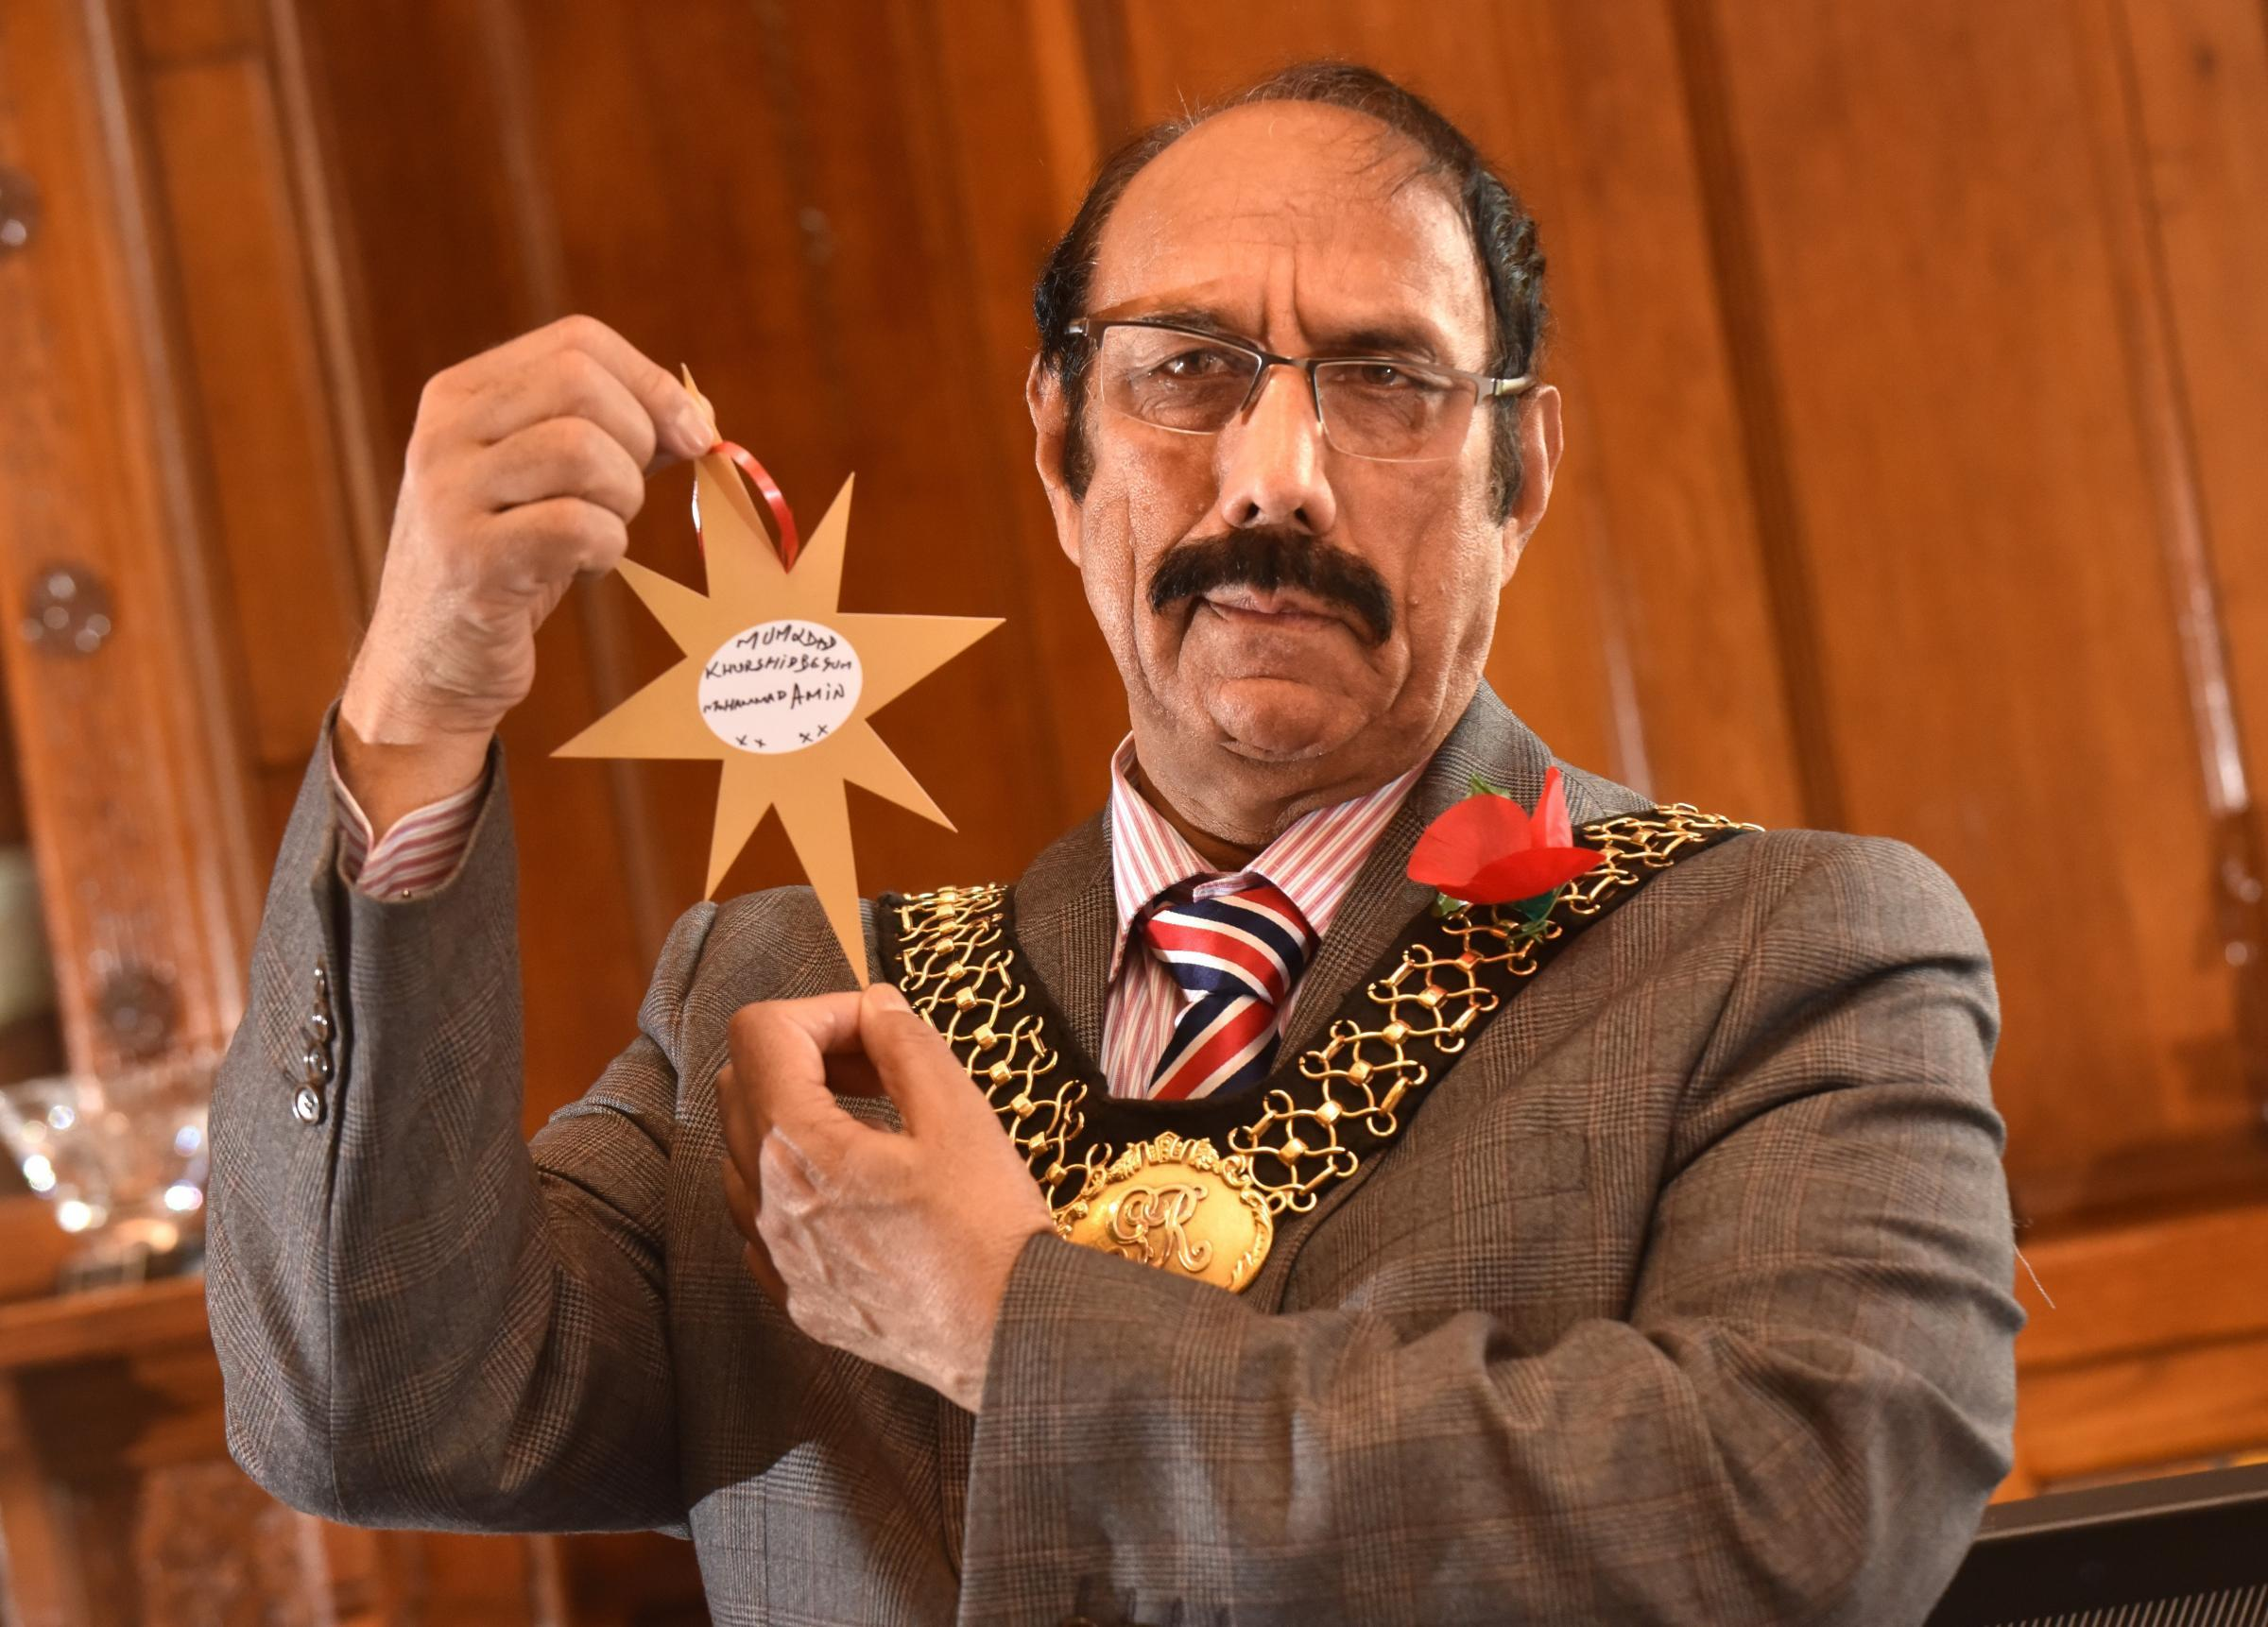 Lord Mayor of Bradford Cllr Zafar Ali with the Christmas star he dedicated to his parents